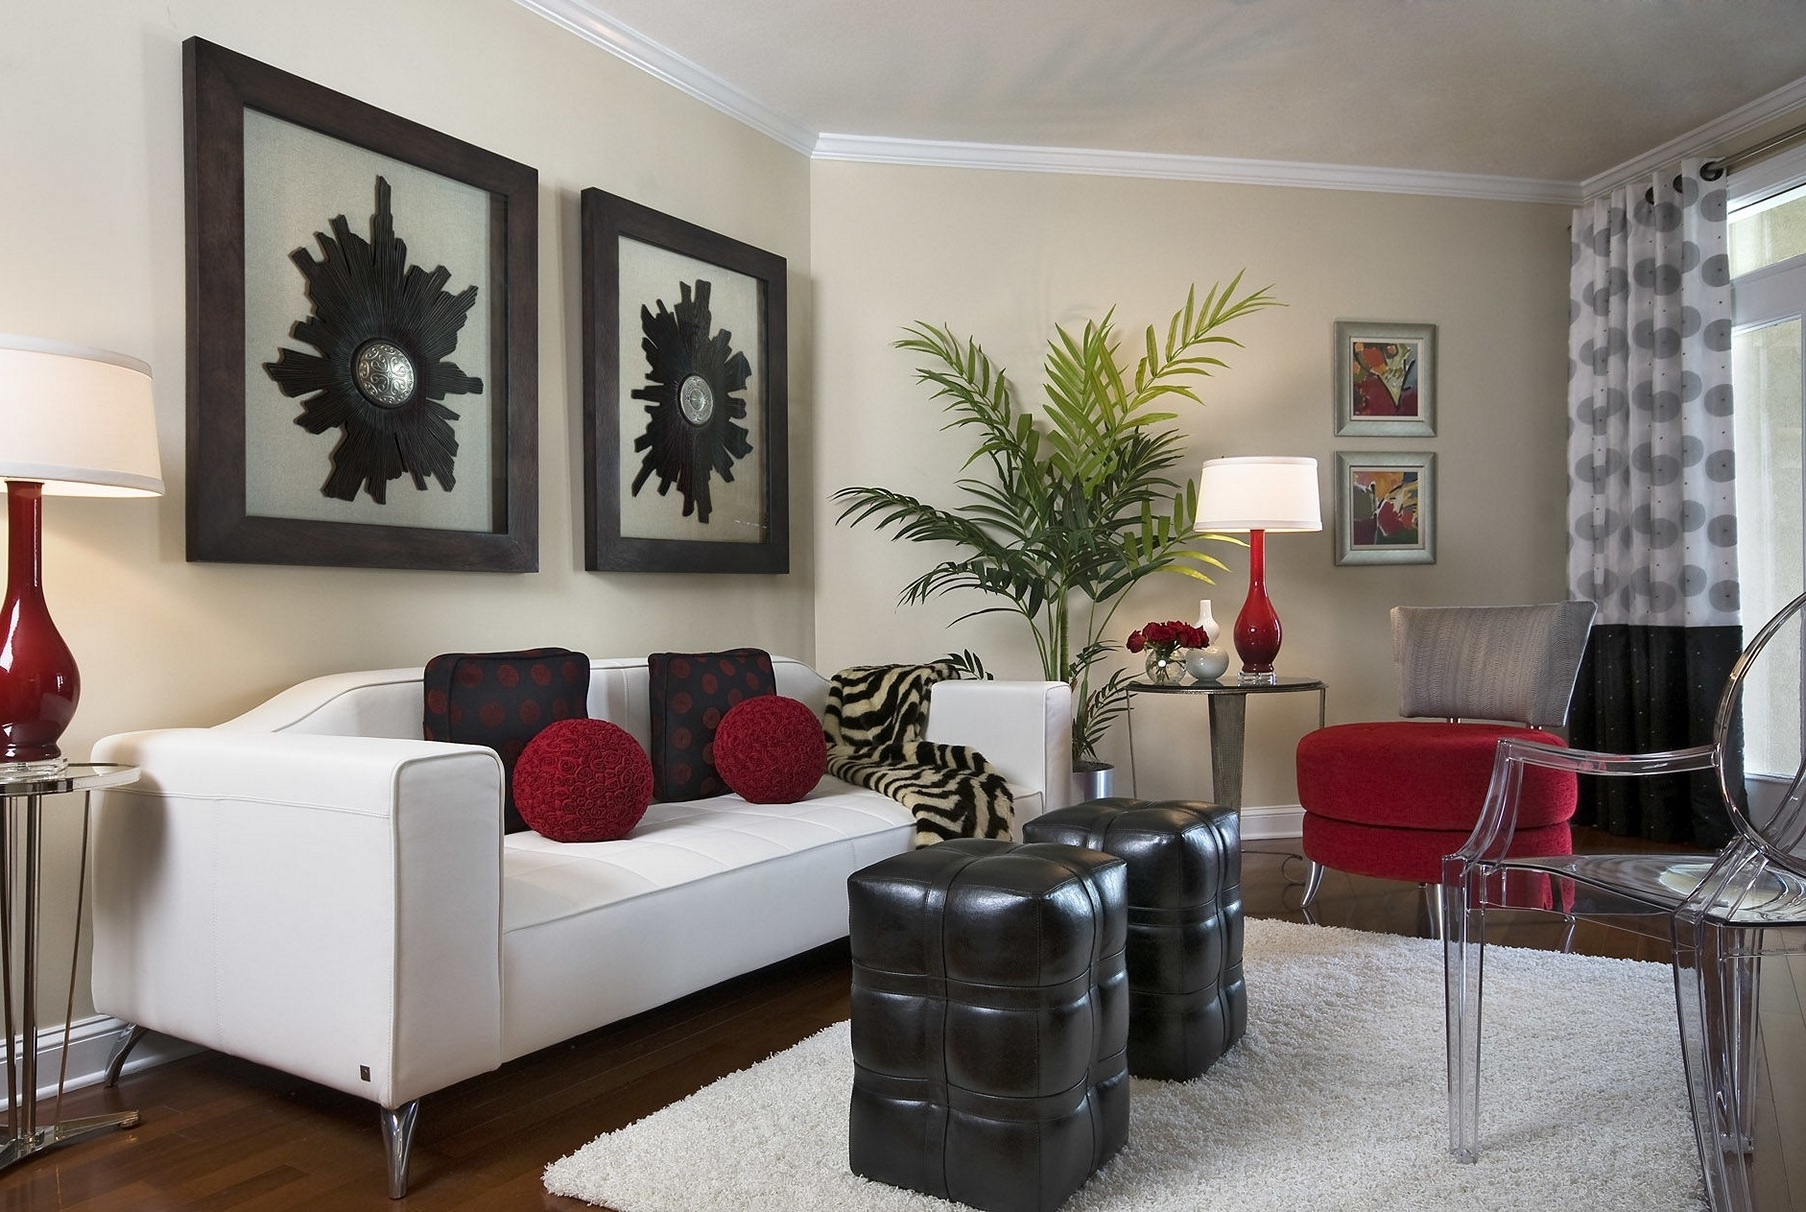 Awesome Living Room Wall Art Ideas Top Living Room Remodel Ideas With Regard To Latest Wall Art For Living Room (View 11 of 15)